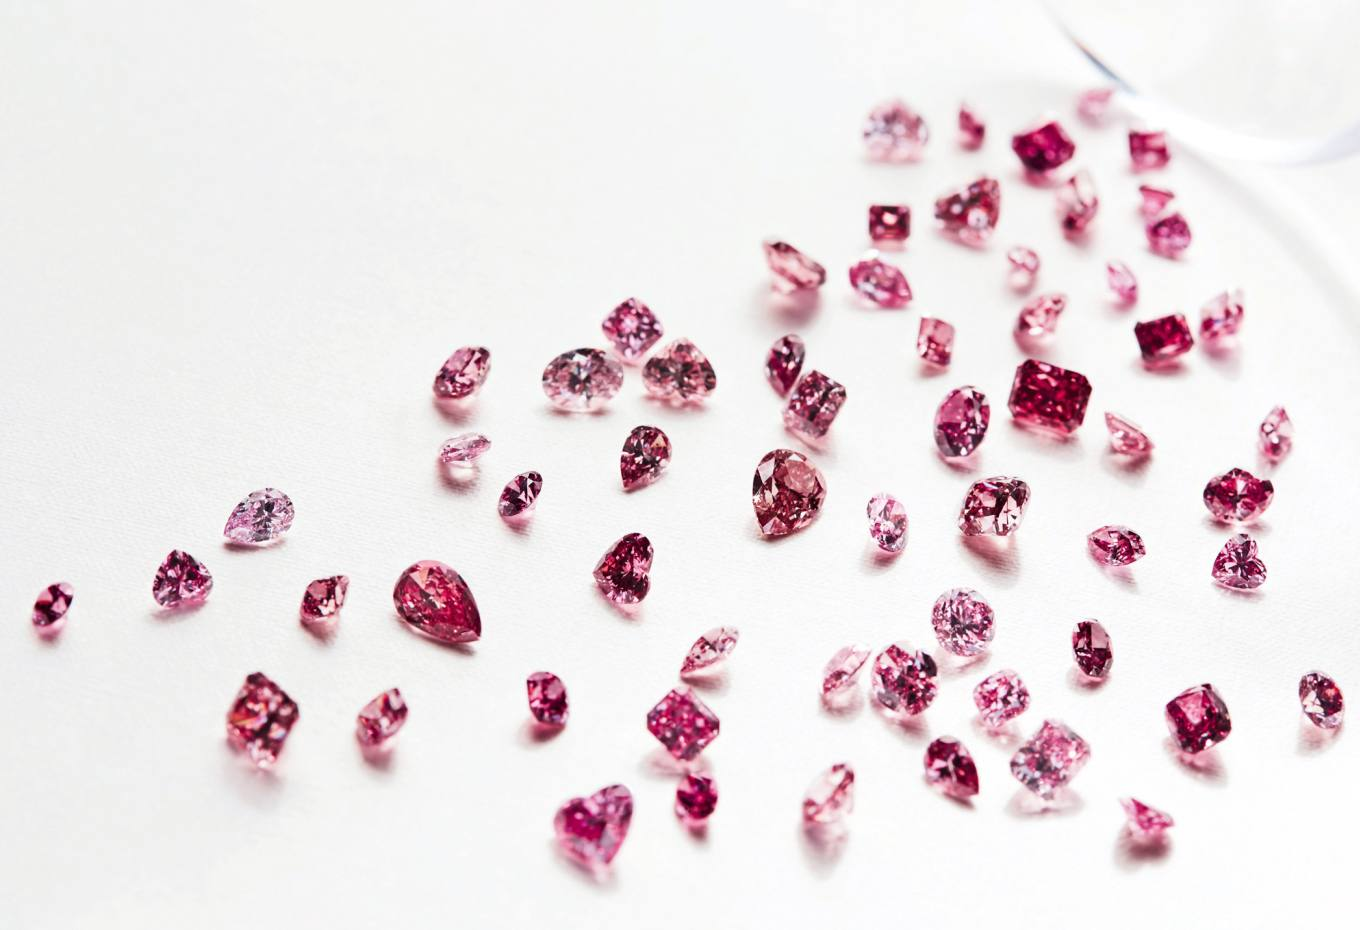 There are 64 stones in this year's Tender – a collection of the finest, largest and most colour-rich pink diamonds produced at the Argyle mine